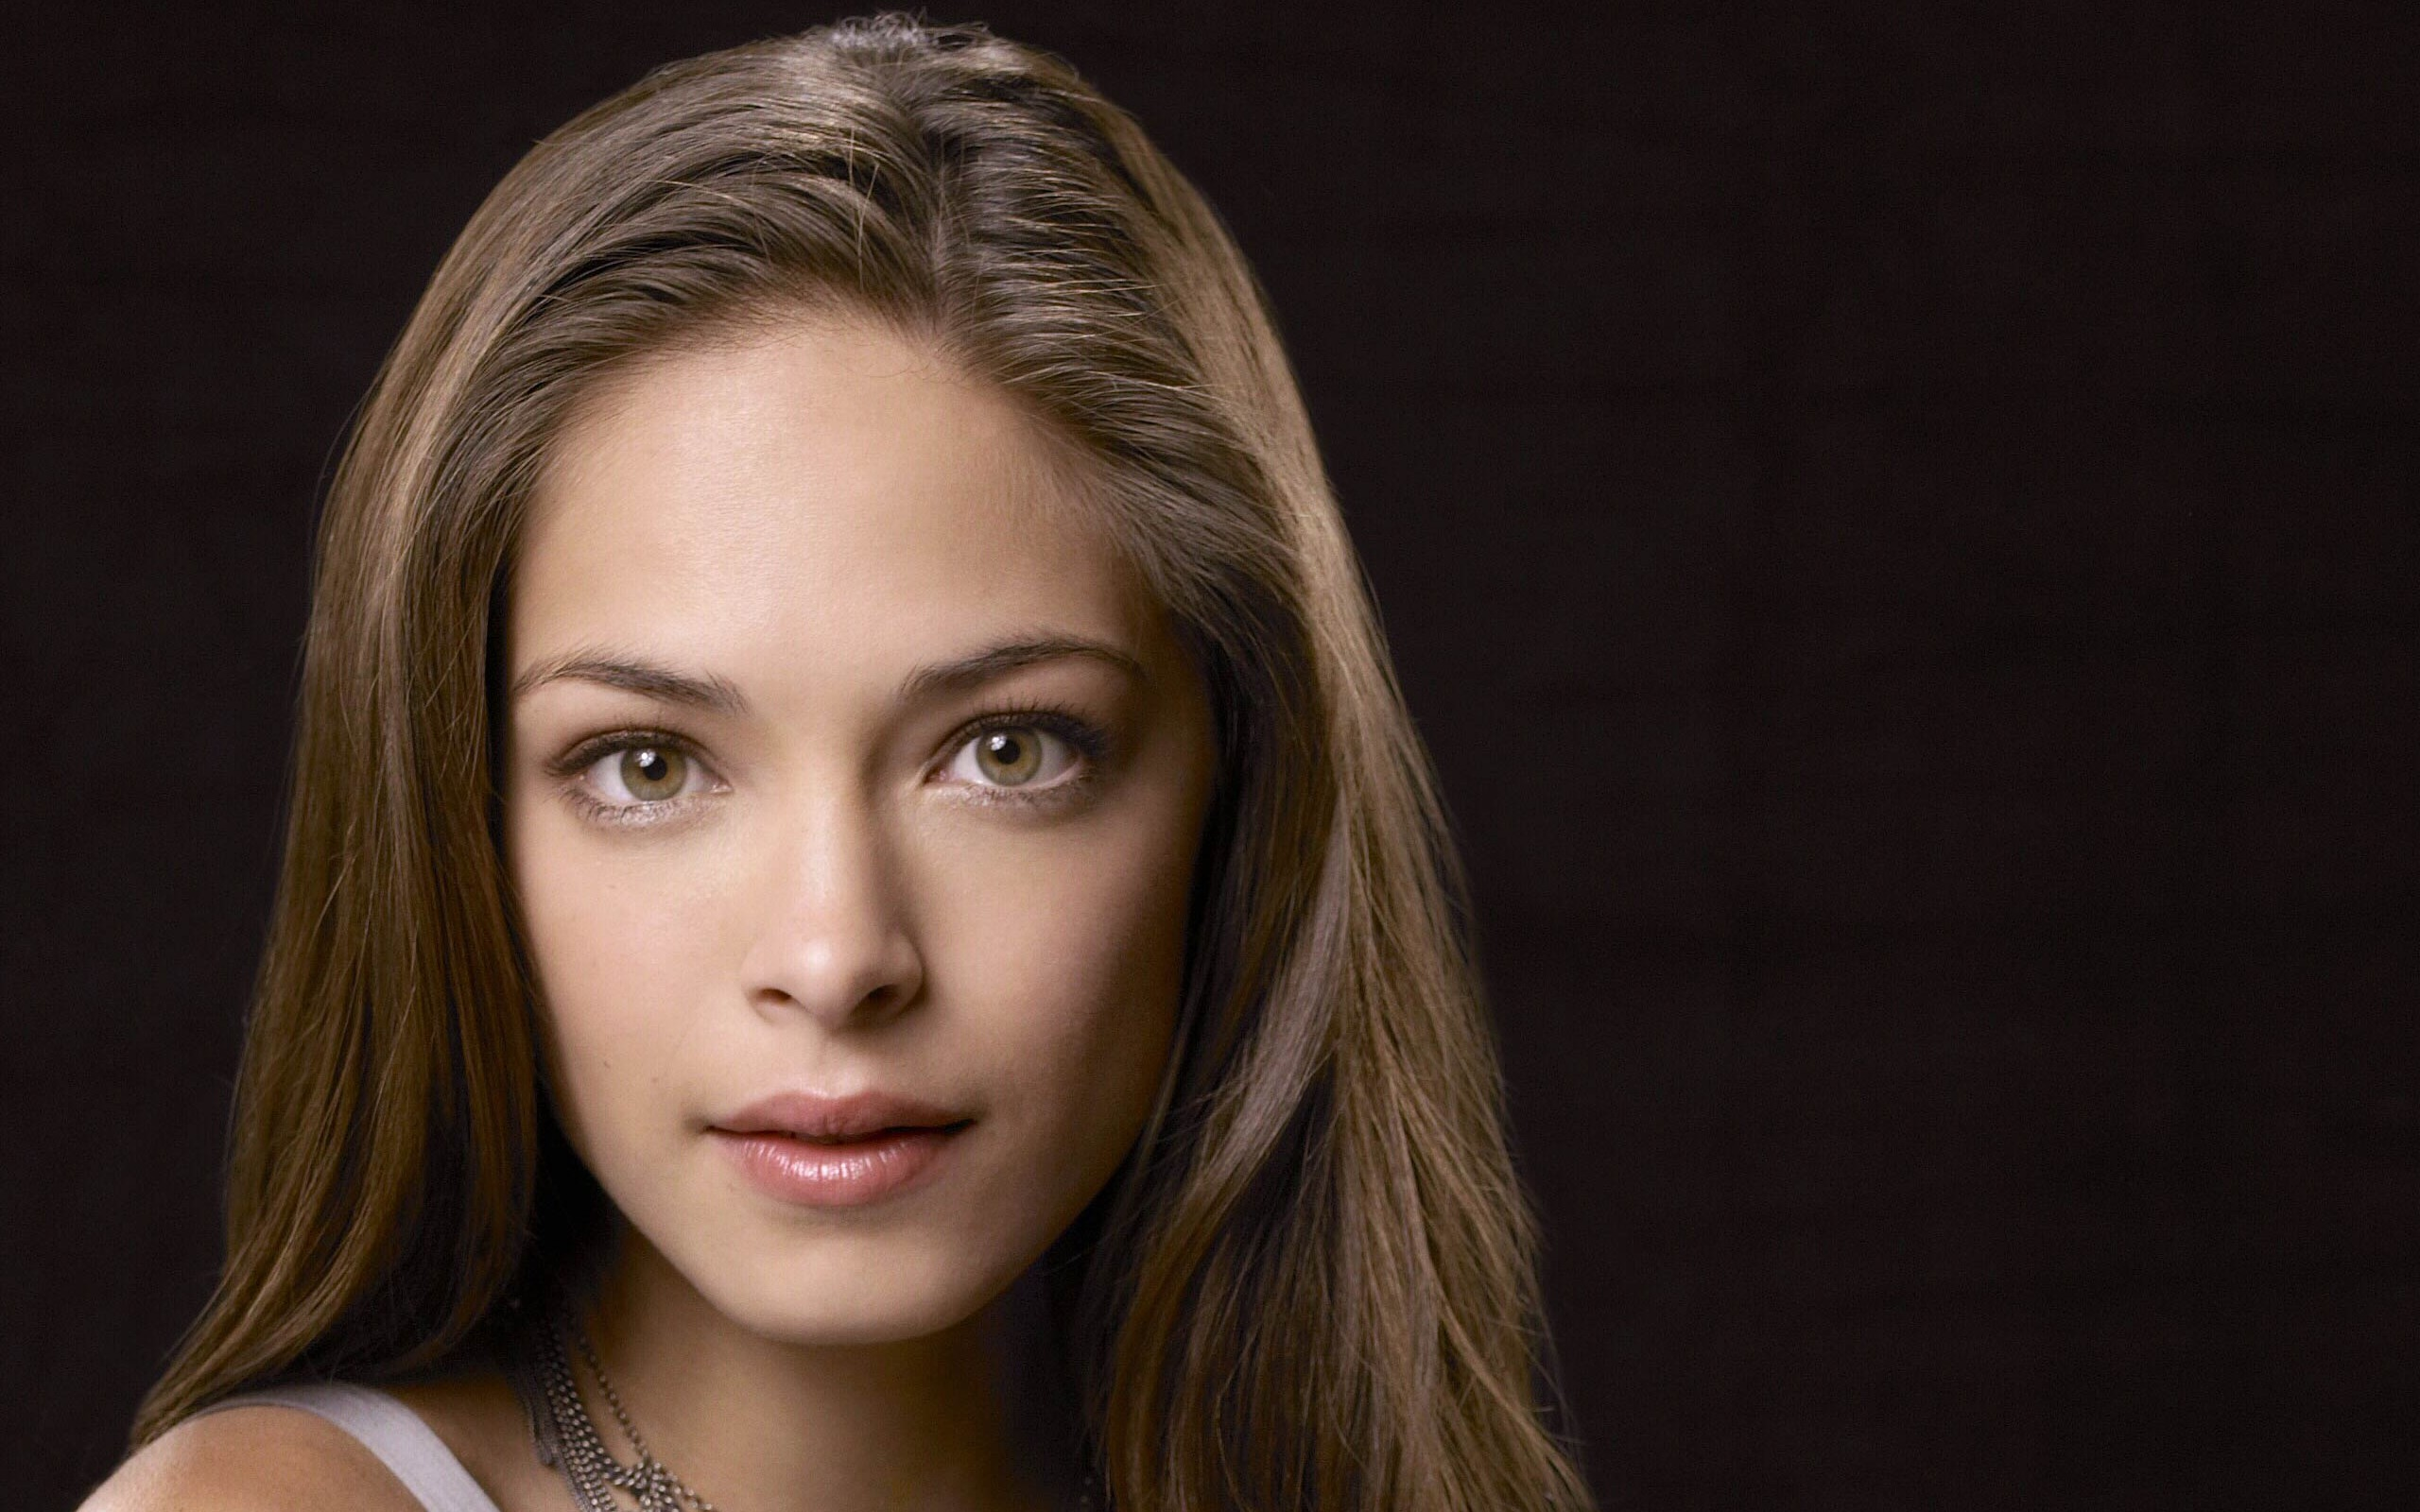 Full Hd Widescreen Wallpapers 1920x1080 Kristin Kreuk Full Hd Wallpaper And Background Image